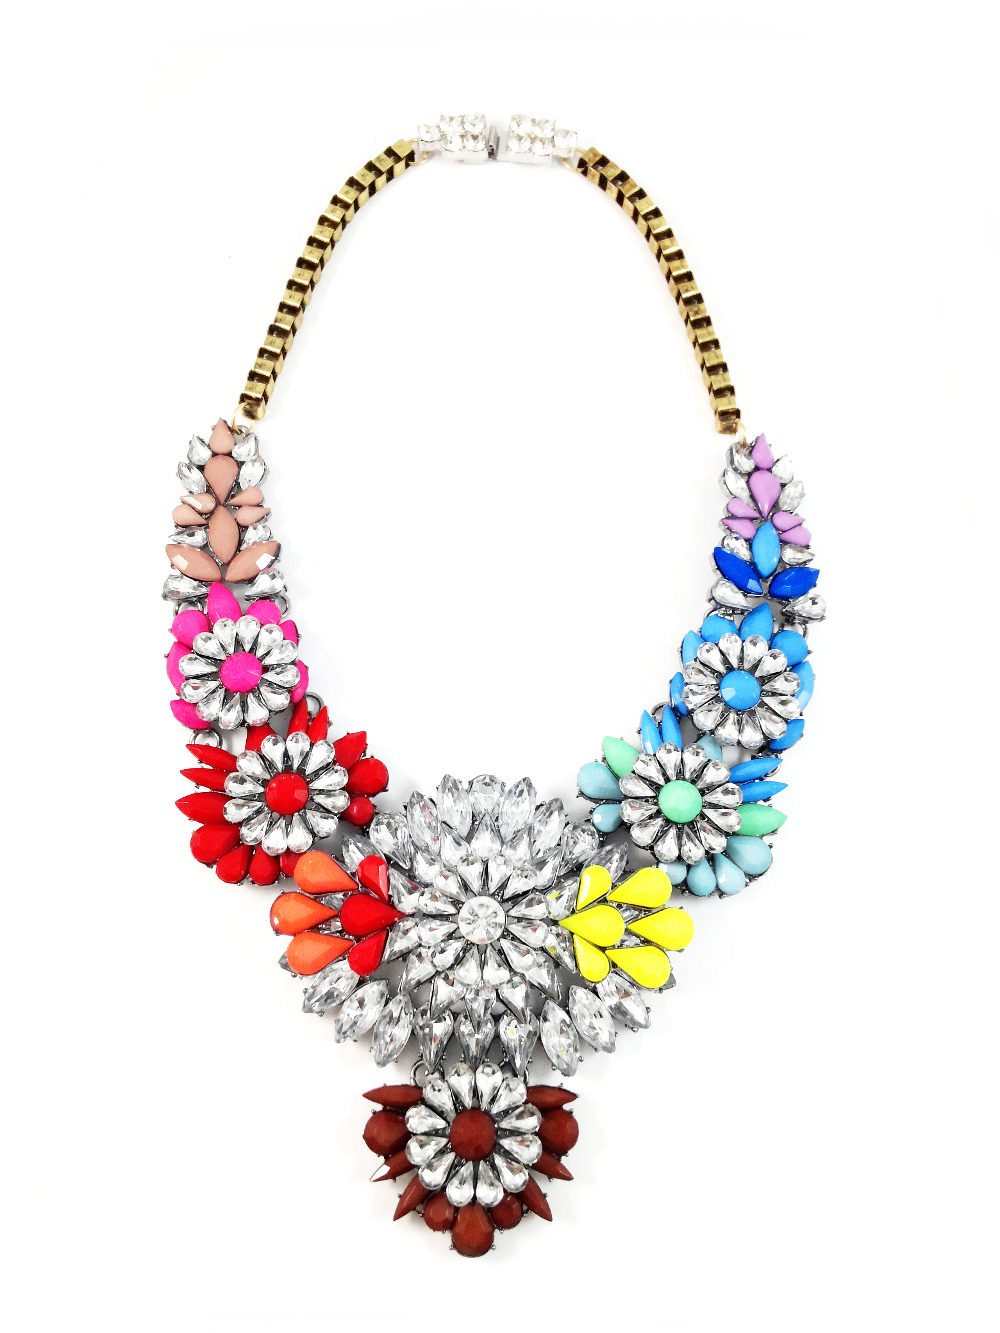 rainbow image necklace shou in apolonia fwrd shourouk of product